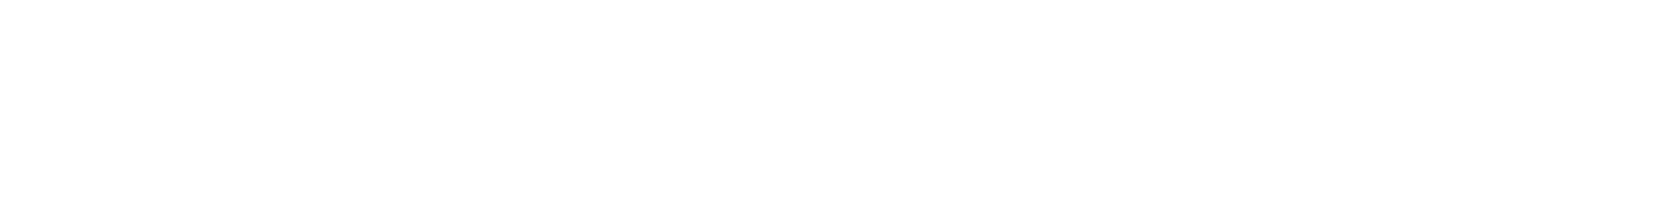 columbus day sale. mattress sets from $297. selection below includes sale and regular price items